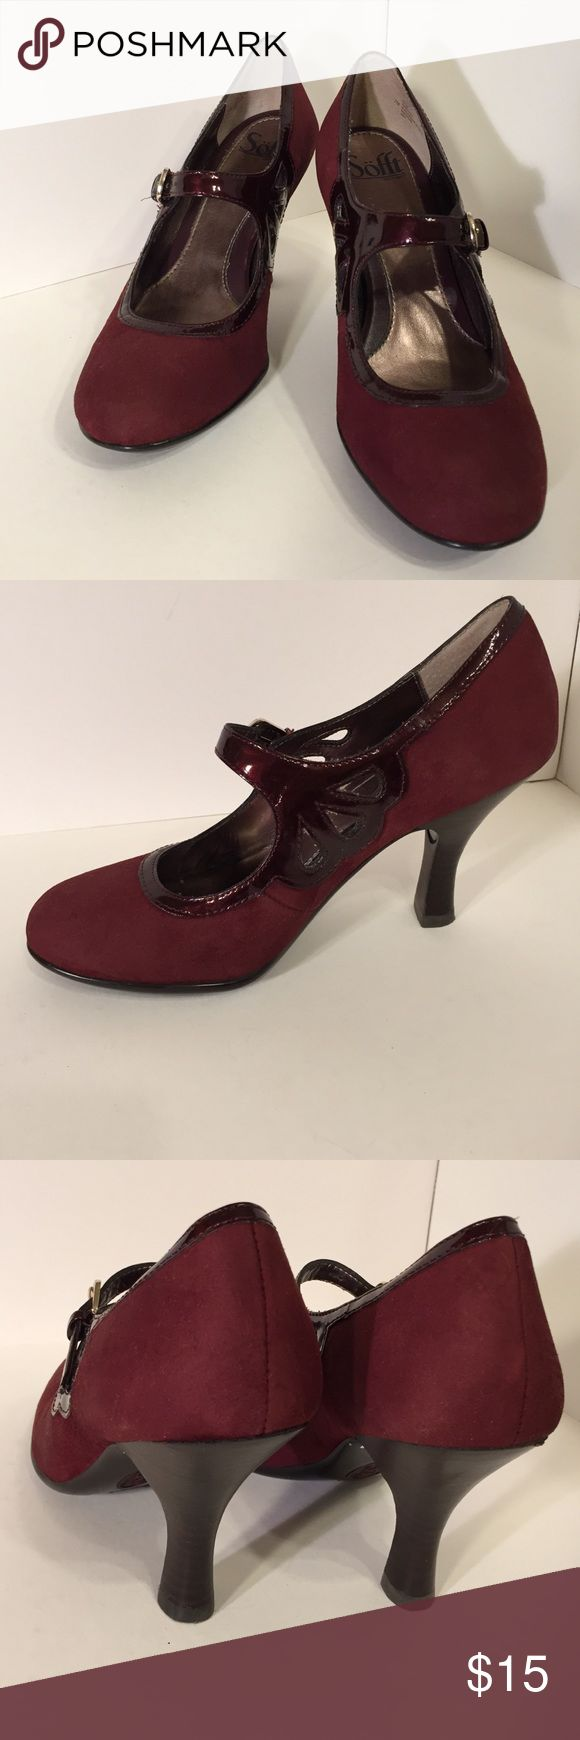 Sofft Burgundy stylish heels HOLD These are a pair of burgundy heels by sofft, padded foot bed, Adjustable buckle, heels 3 1/2 inches. Leather uppers, balance man made with materials. Size 7M . Good condition minor wear, a few light scuffs.See pictures for details. Be sure to check out other items in closet and bundle to receive discounts. Sofft Shoes Heels